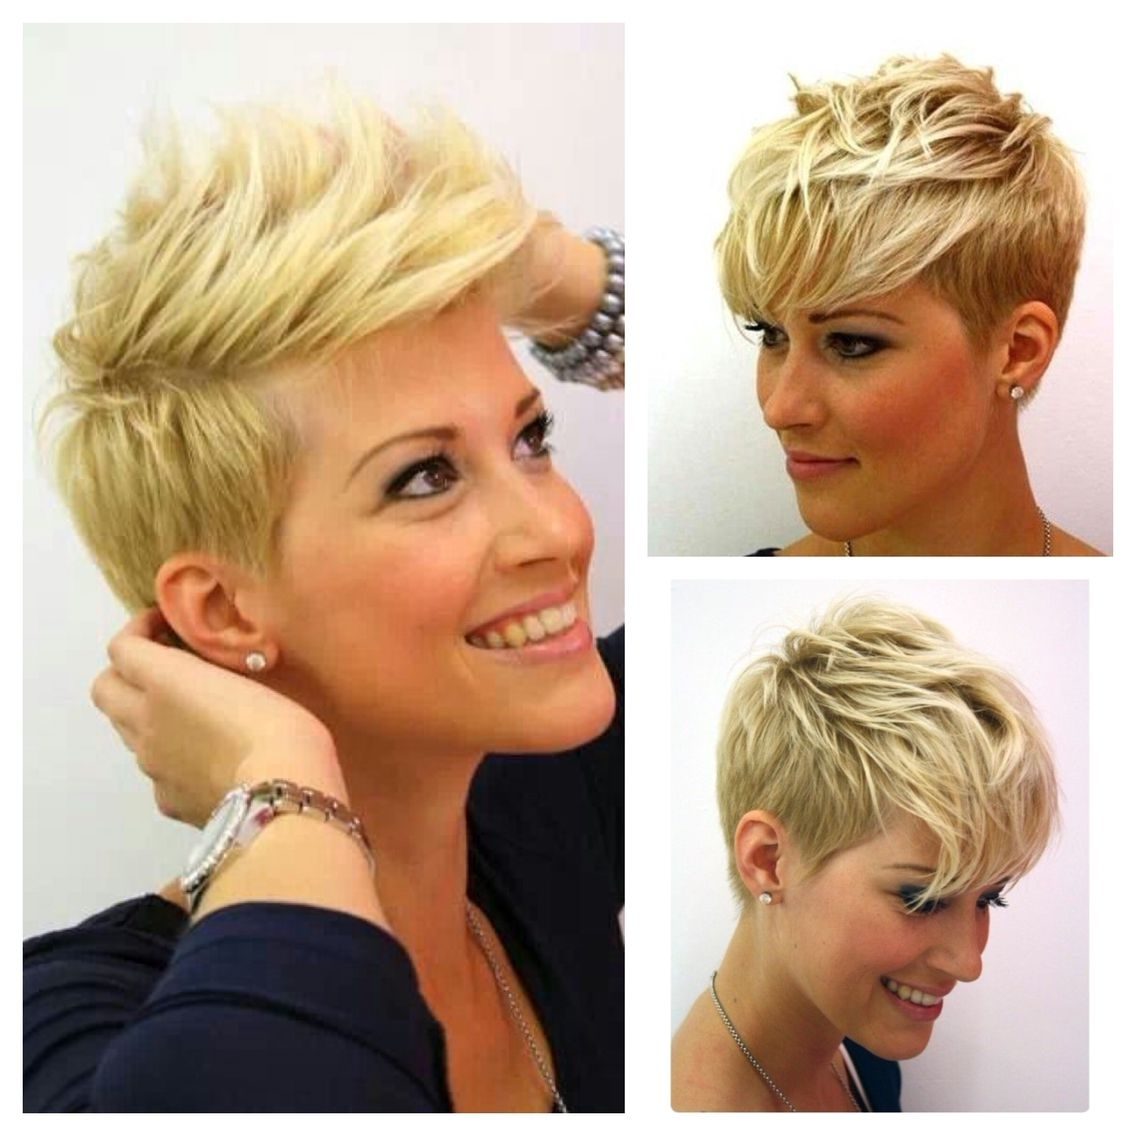 Super Cute Short Layered Pixie Cut For Fine Hair | Fun Things For Within Most Current Posh Pixie Hairstyles (View 10 of 15)